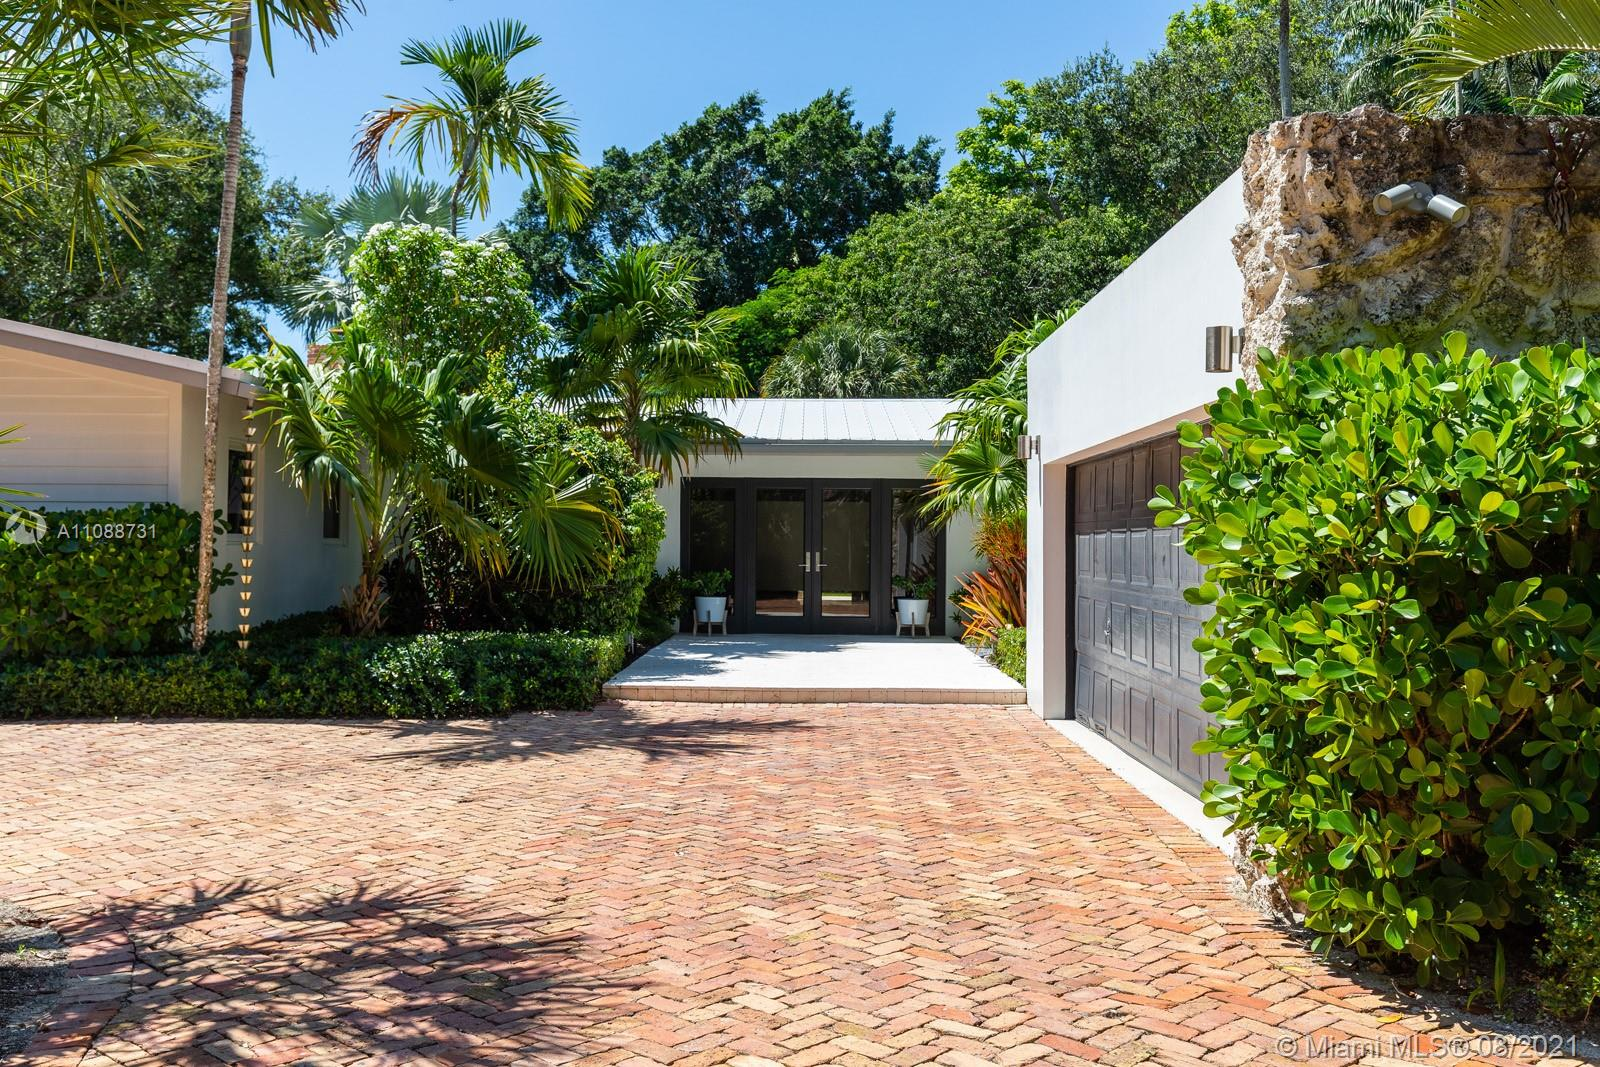 This is not your cookie-cutter Pinecrest home! A beautifully-renovated, 4 BD/4.5 BA, single-story home situated on a gated, lush corner lot on one of Pinecrest's most idyllic streets. With more than 3,800 ADJ SF, this home offers ample living spaces with an open chef's kitchen, generous patio + large family room/den that is perfect for a playroom, home office or flex space, complete with a wood-burning fireplace. While this home has all the modern updates (including smart home systems, renovated bathrooms, impact windows, a brand new hurricane-rated garage door, all Thermador appliances, newly-resurfaced saltwater pool, etc.), it also pays homage to the home's original charm with stunning terrazzo floors in the primary bedroom. This home is completely turnkey + ready for new owners.